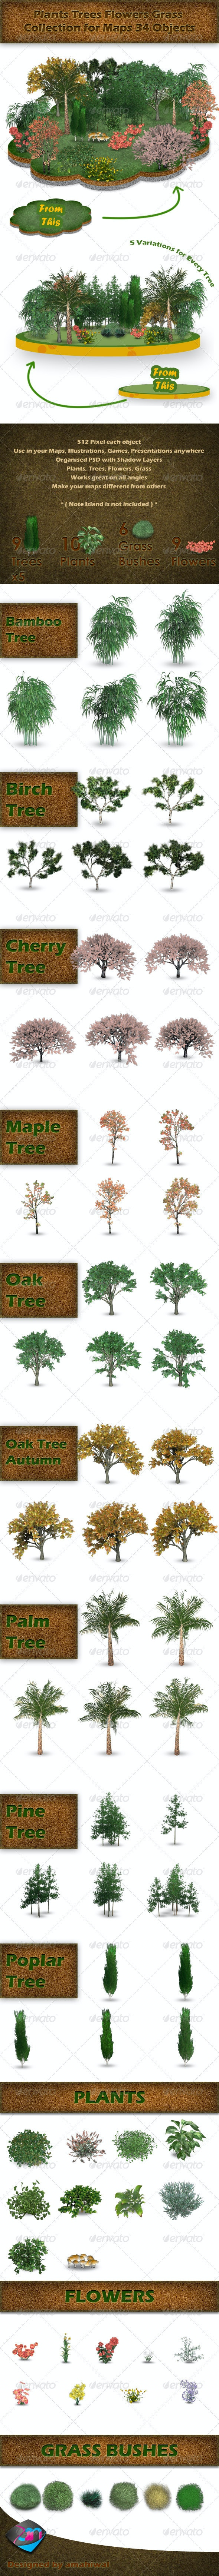 Plants Trees Flowers Grass Collection for Maps - Nature & Animals Isolated Objects